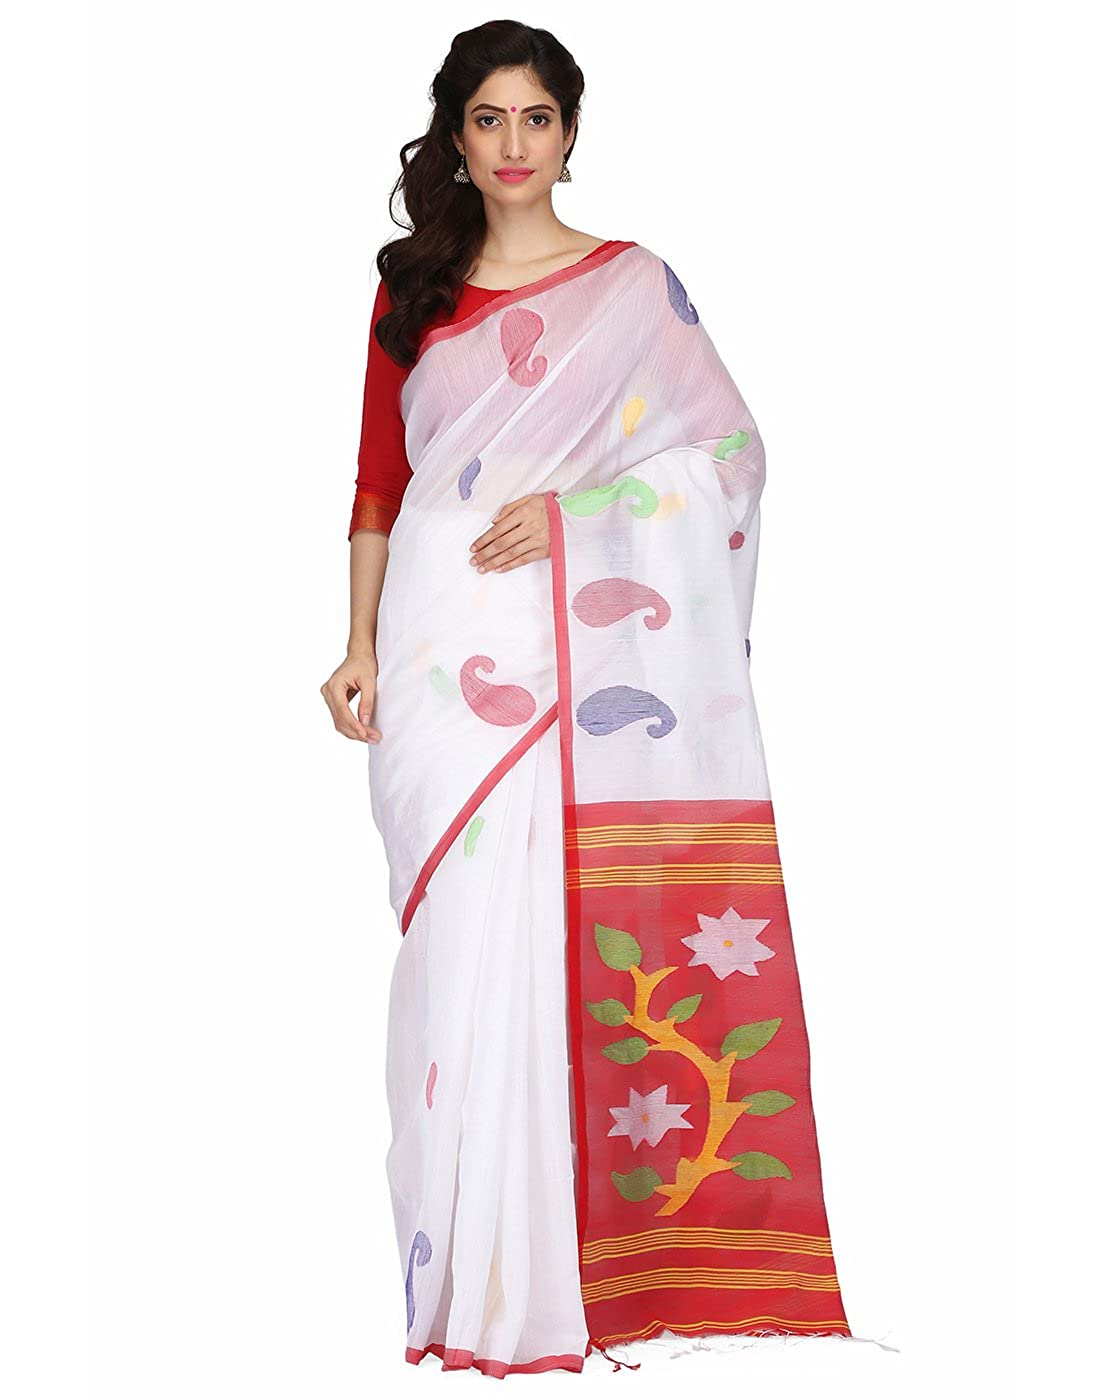 5459c4847070b4 The Weave Traveller Handloom Hand Woven Half & Half Cotton Silk Jamdani  Saree For Women With Attached Blouse: Amazon.in: Clothing & Accessories